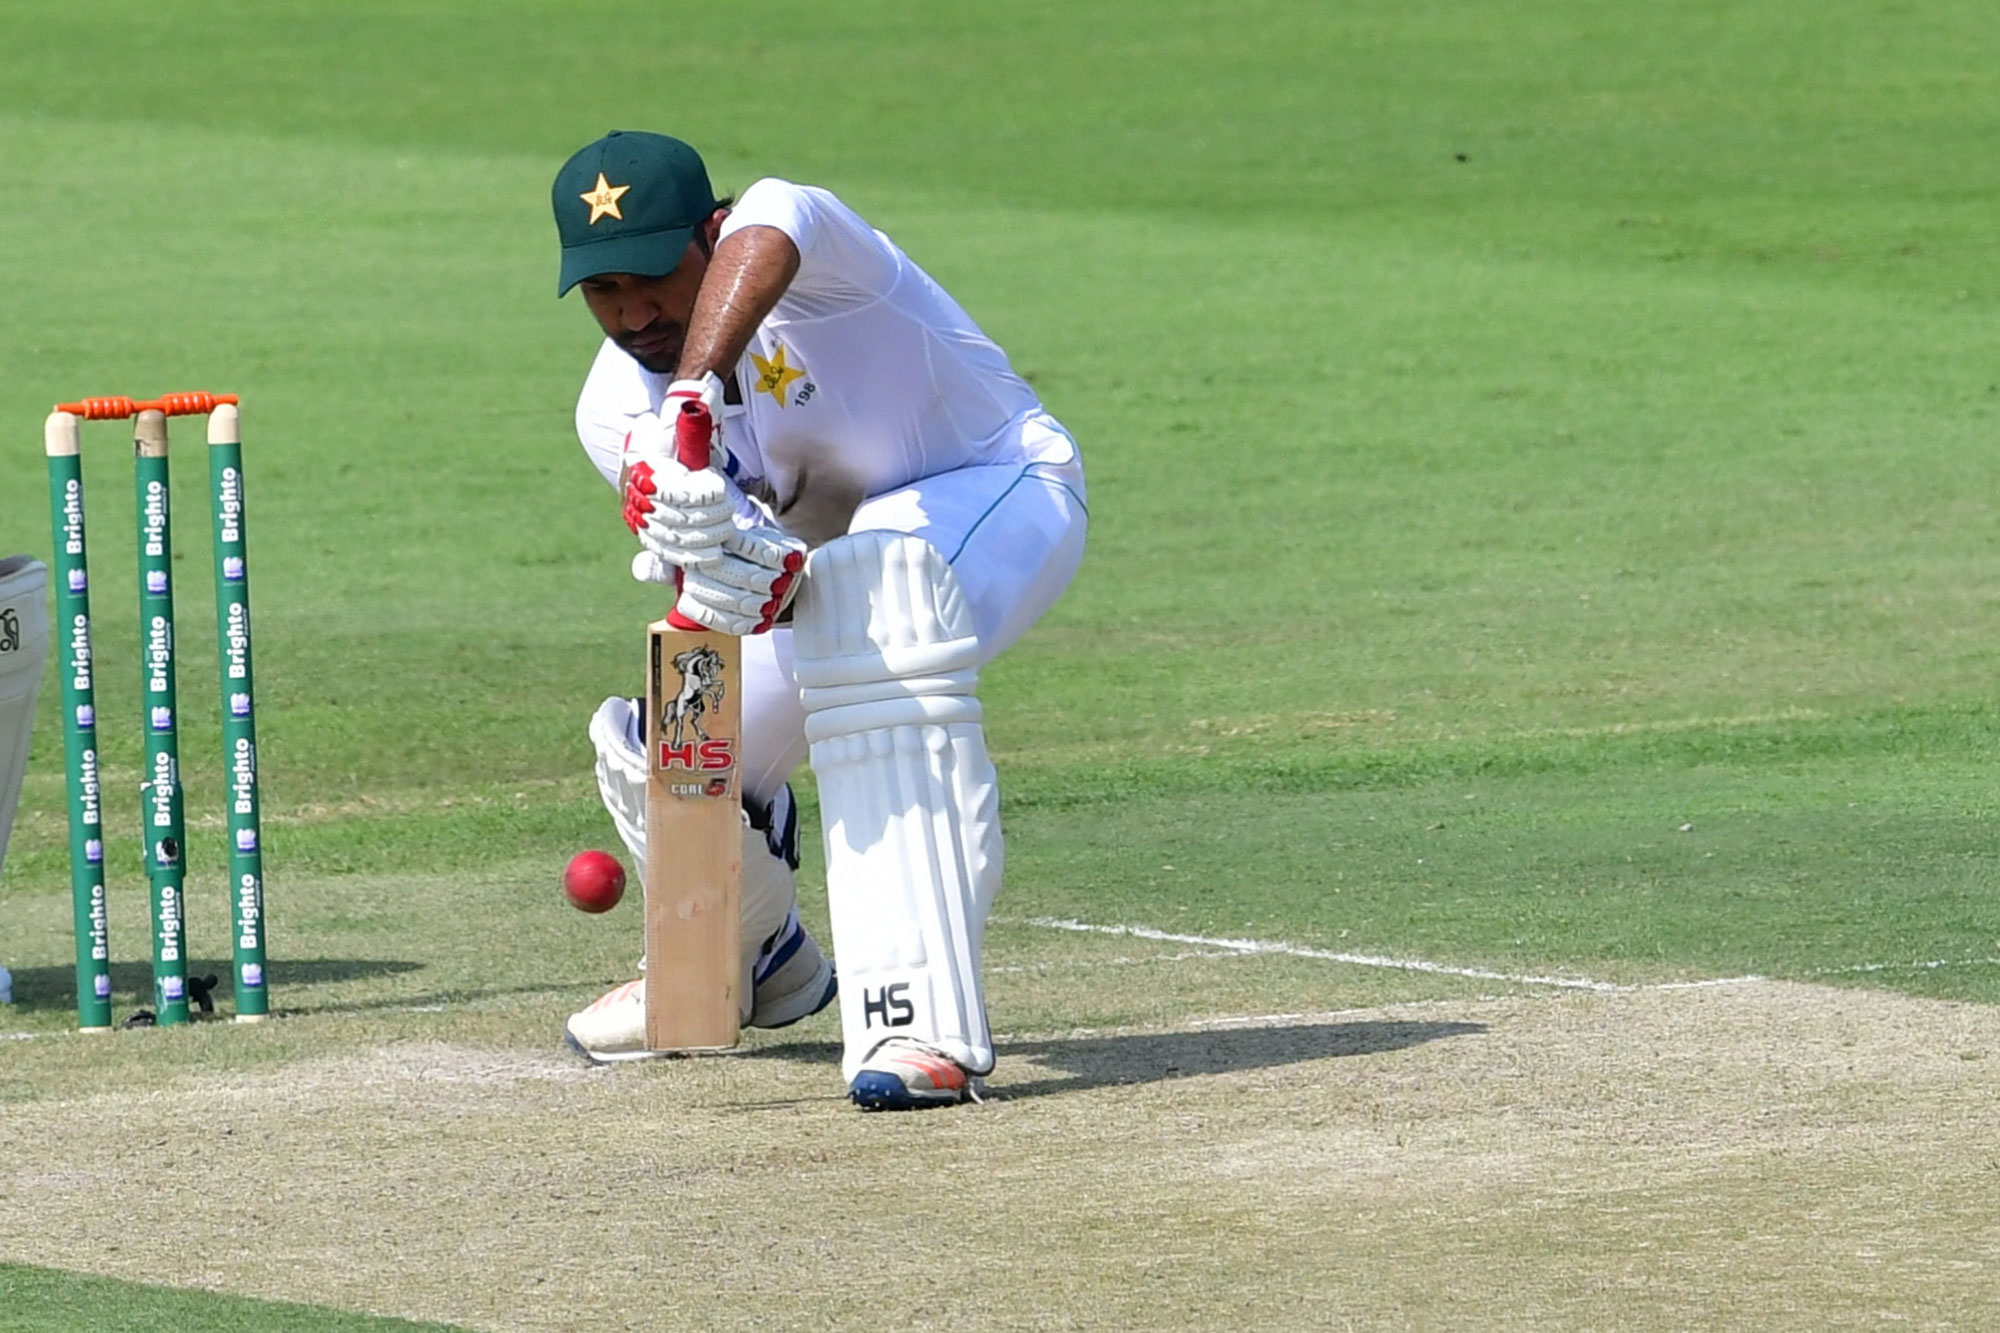 Pakistani cricketer Ahmed Sarfraz plays a shot during day one of the second Test cricket match in the series between Australia and Pakistan at the Abu Dhabi Cricket Stadium in Abu Dhabi on October 16, 2018. (Photo by GIUSEPPE CACACE / AFP)